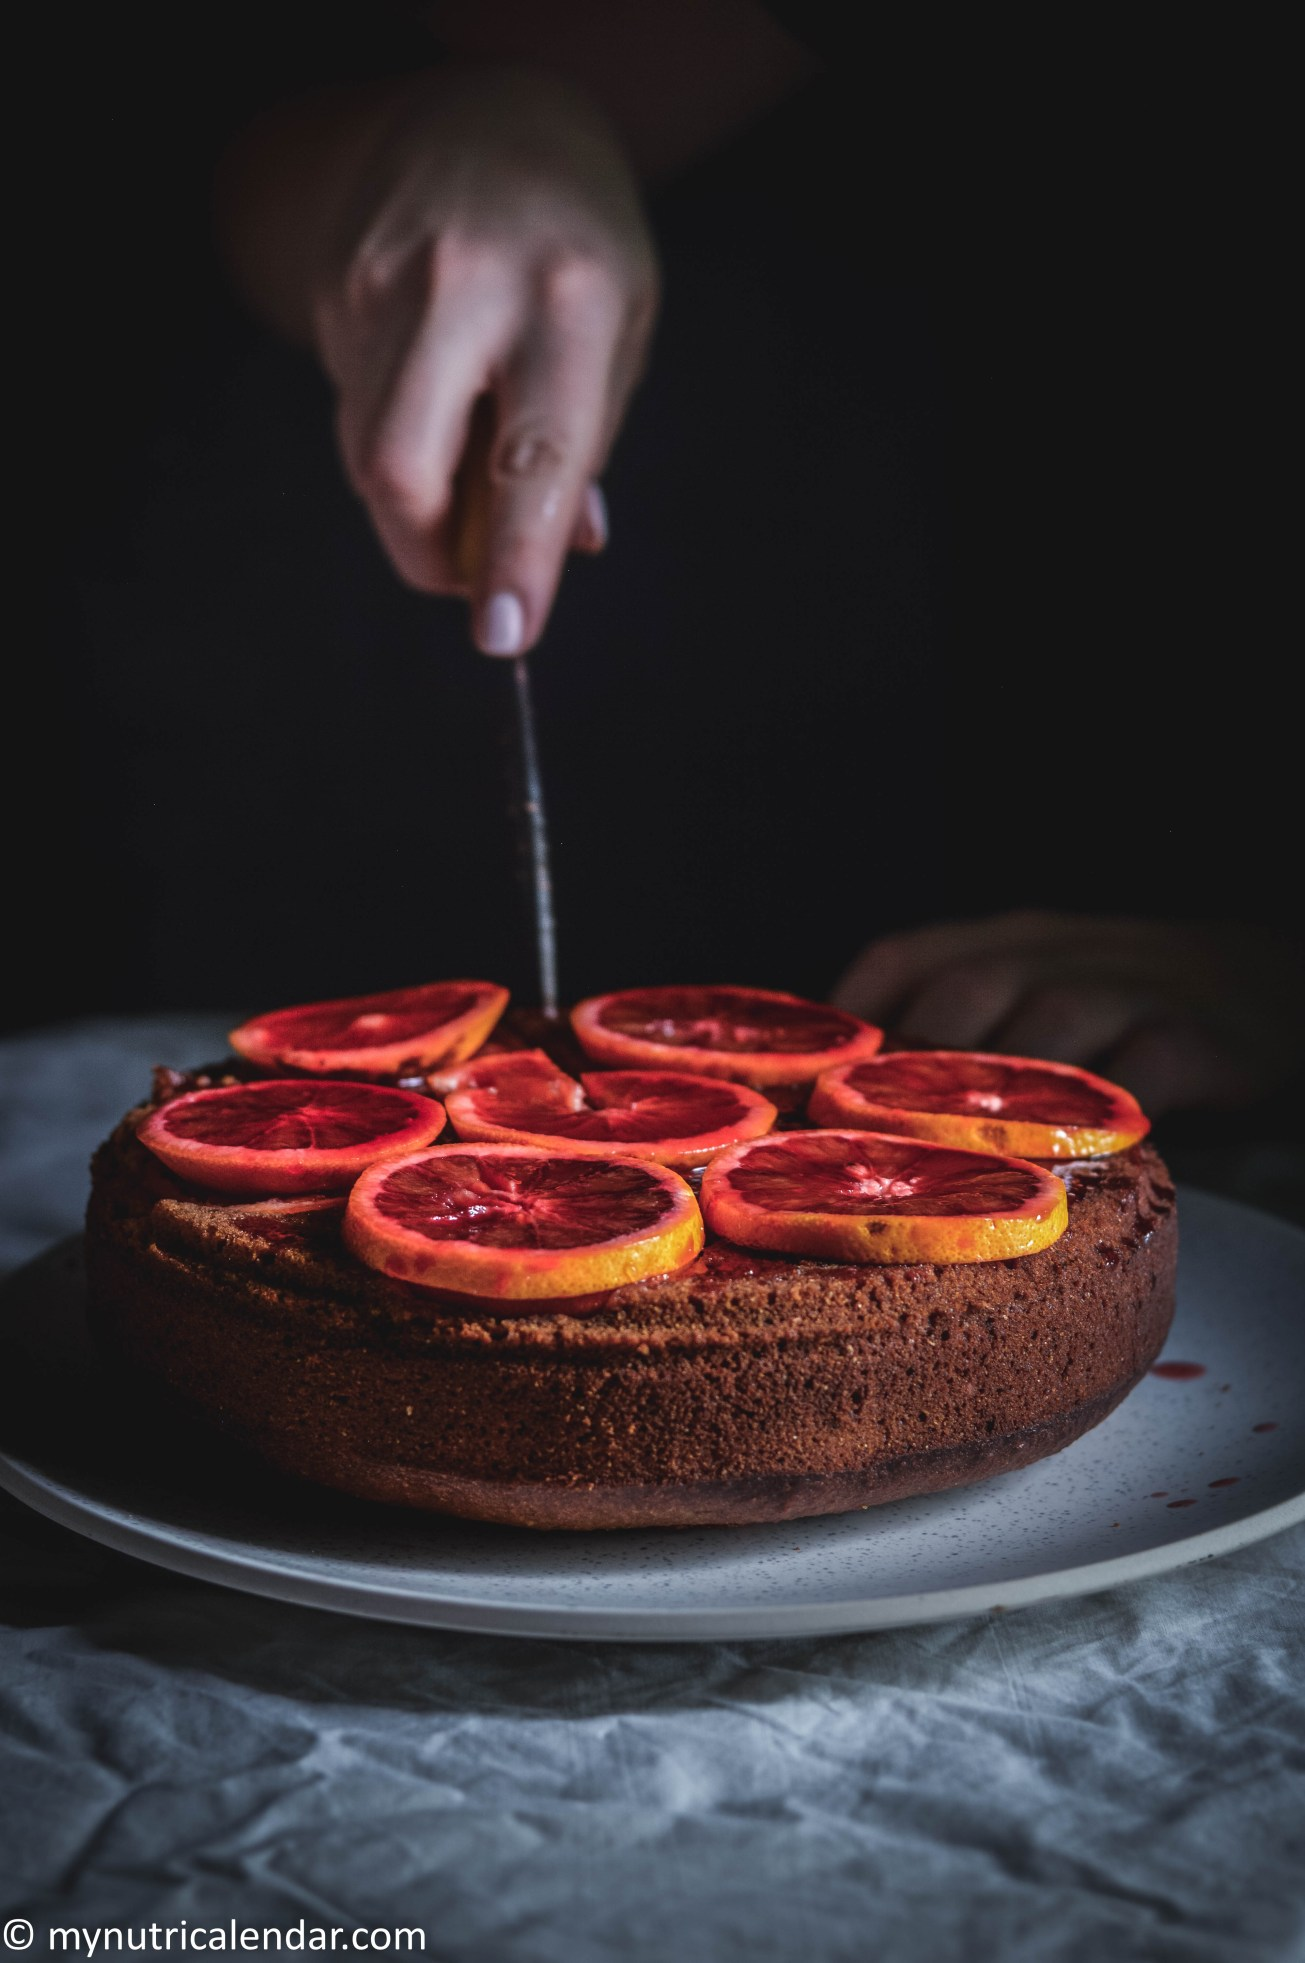 blood-orange-cake-chocolate-chips-raisins-no-sugar-5